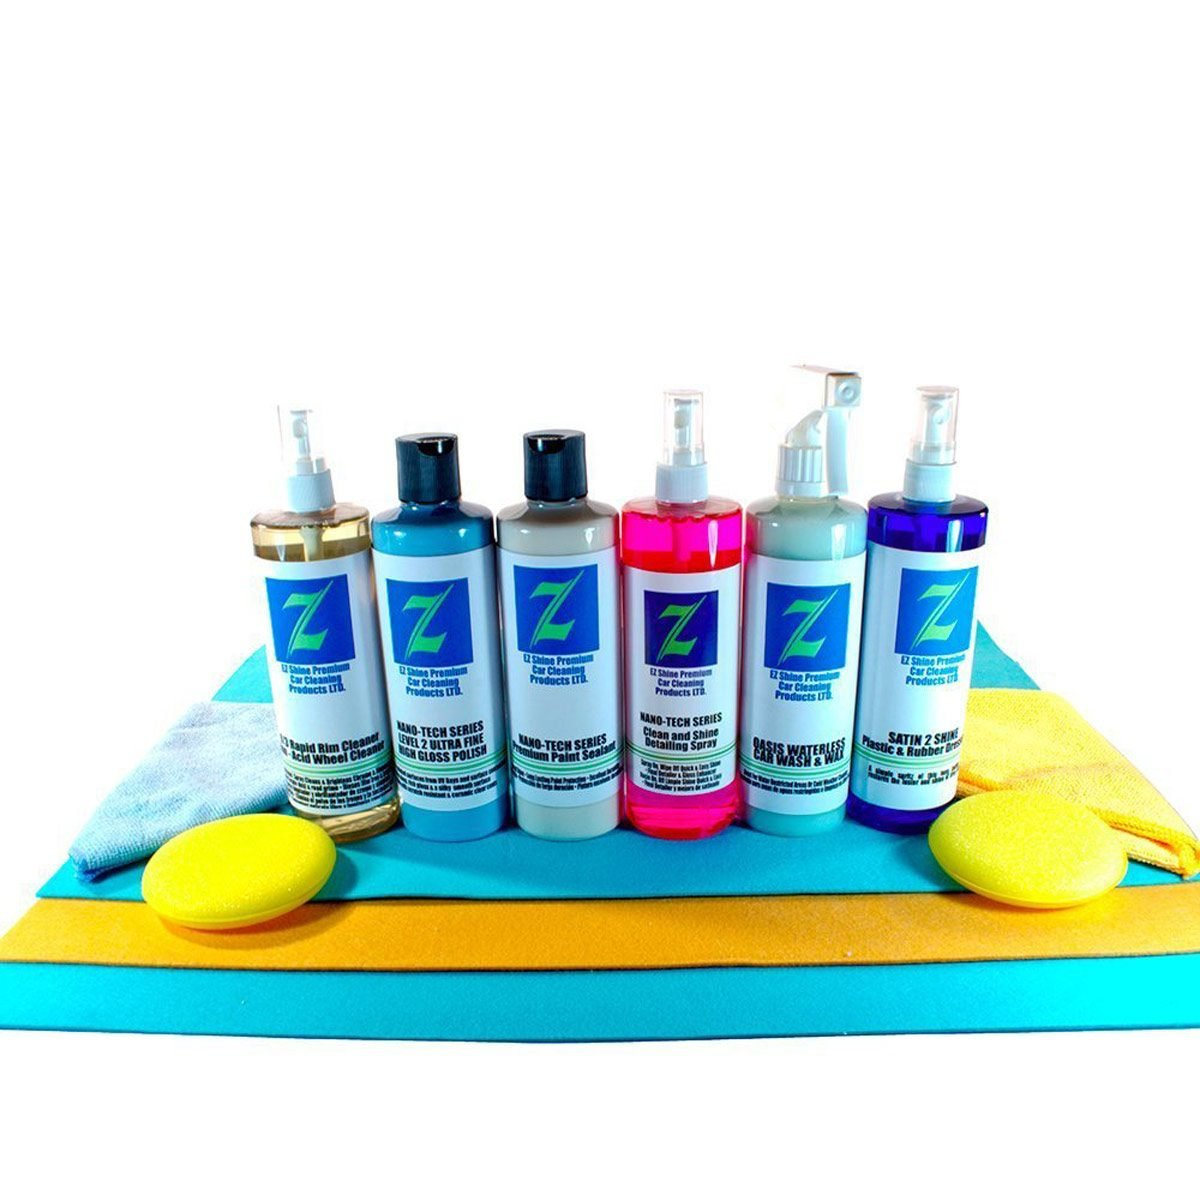 2ez car interior cleaning kit